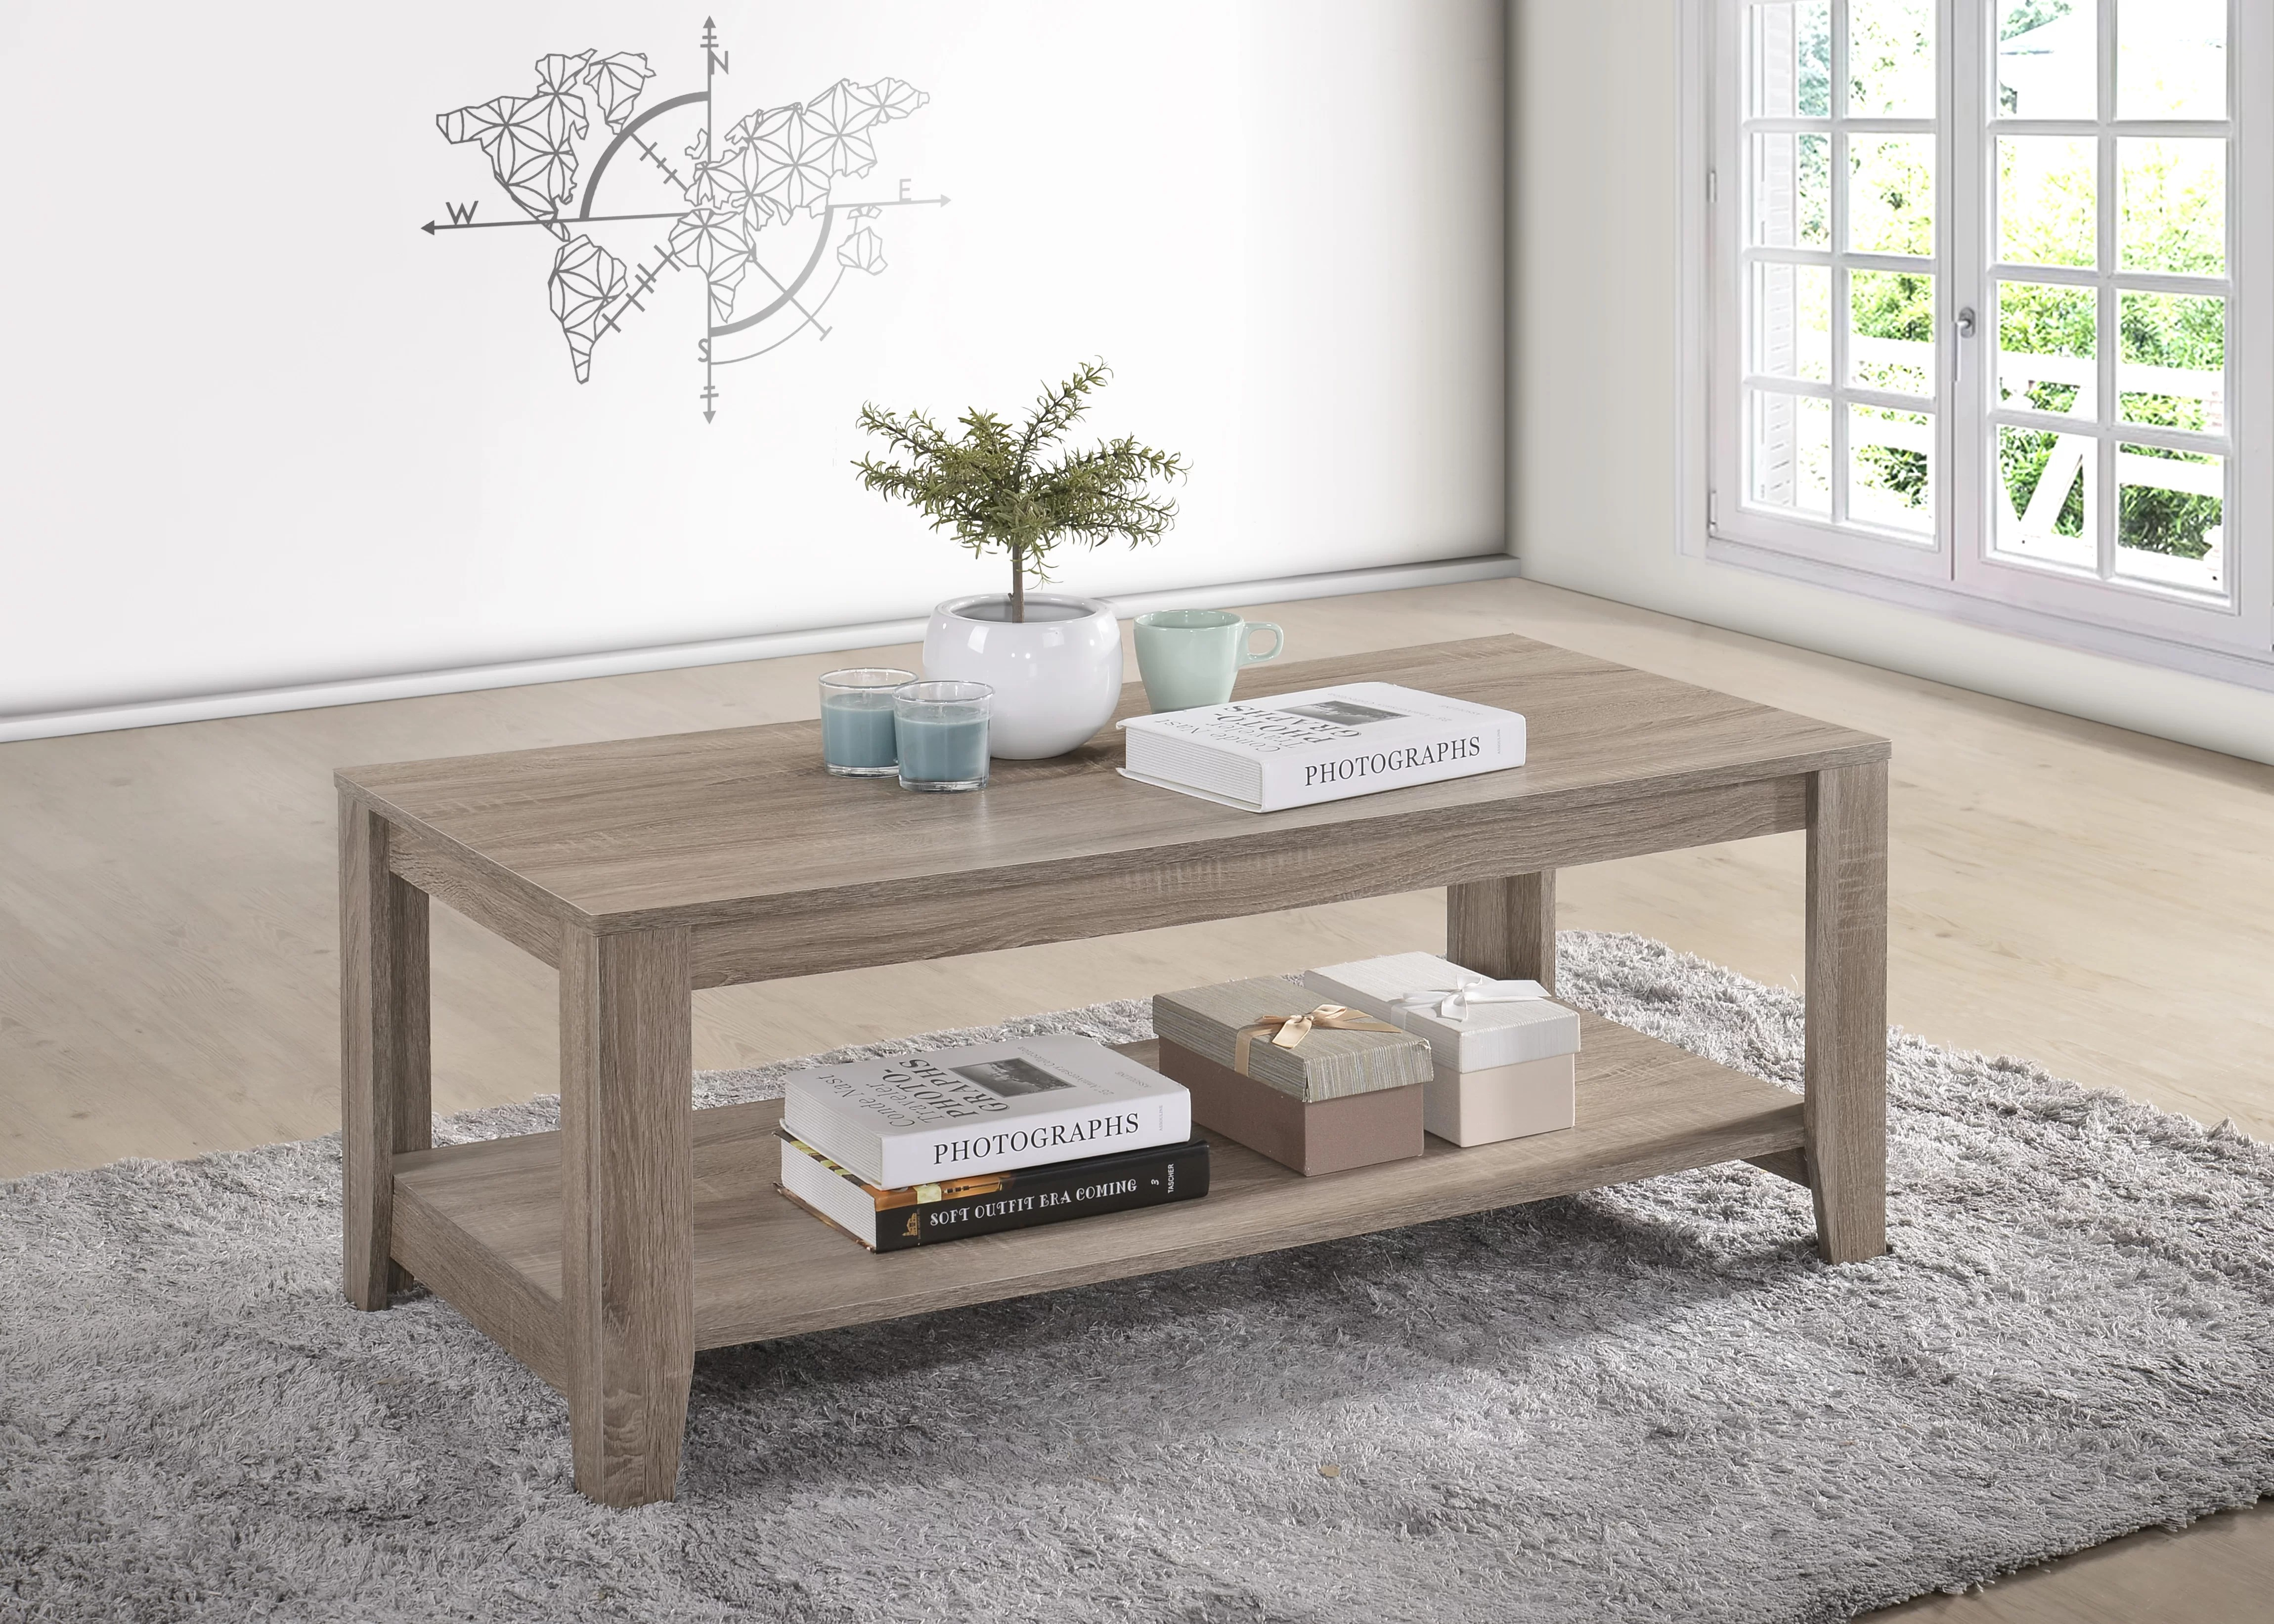 Highland Dunes Hille Coffee Table With Storage Reviews Wayfair